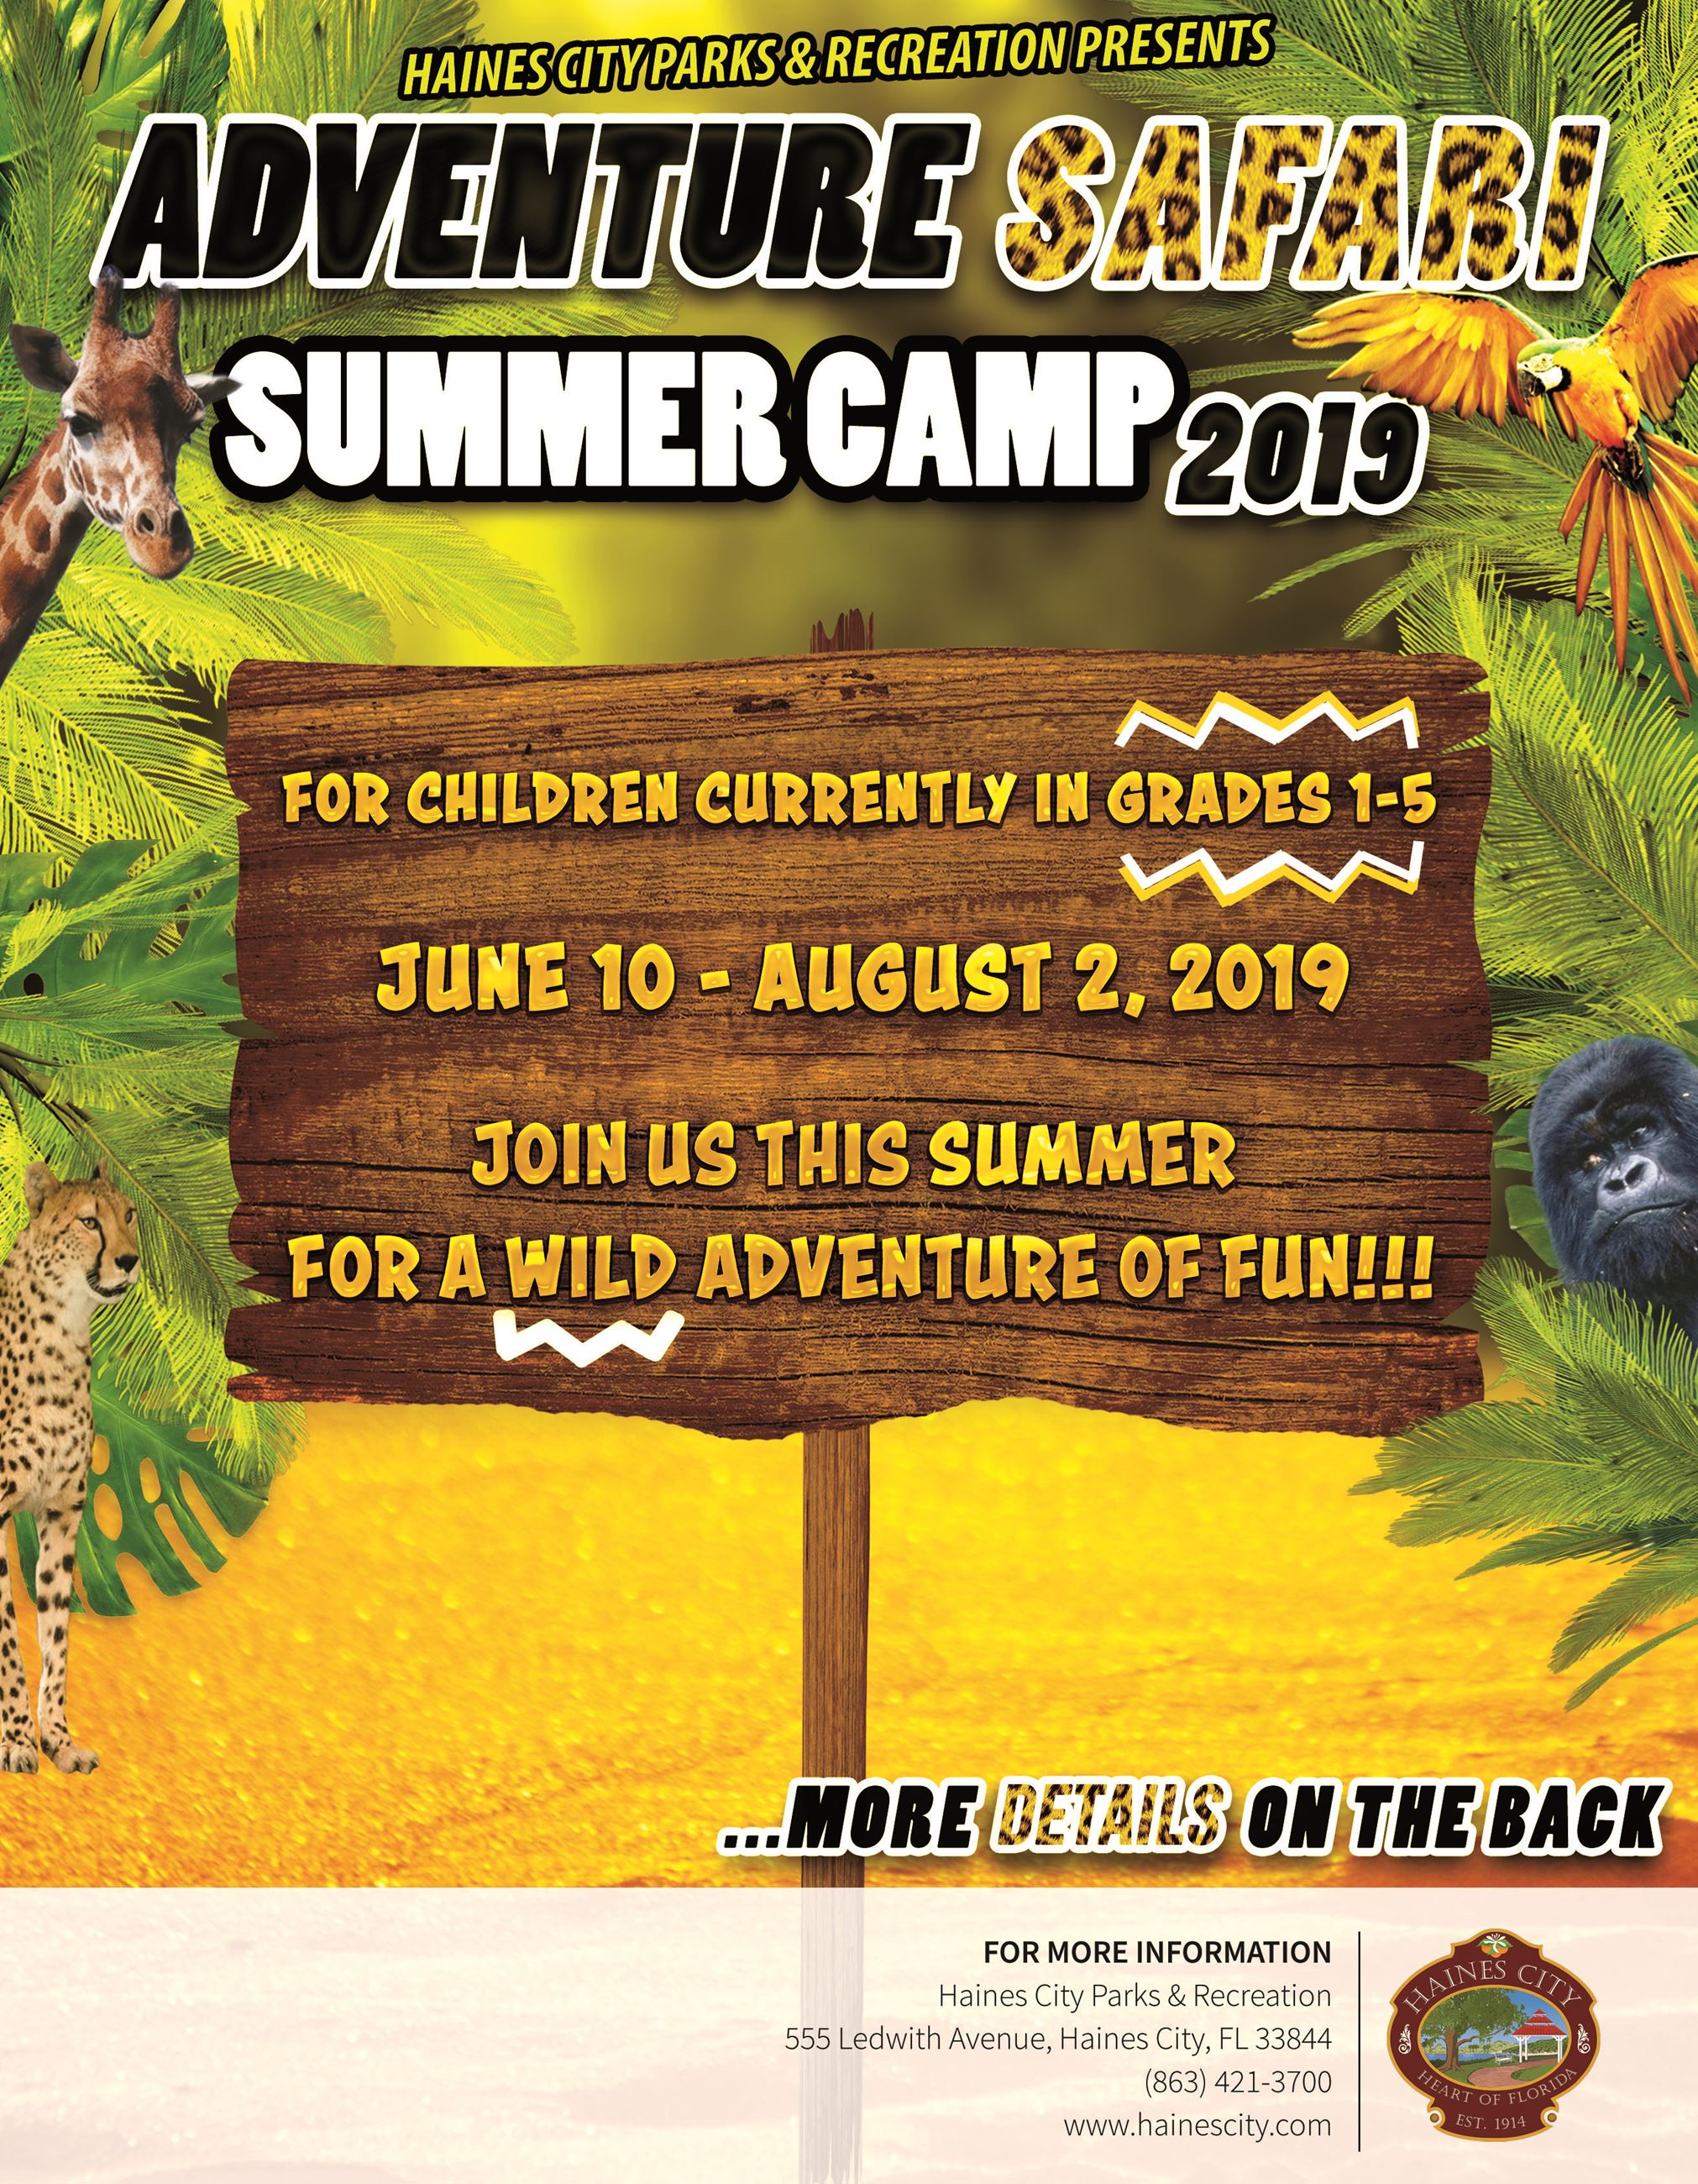 Summer Camp 2019 is Adventure safari.  the Camp is held for grades 1-5 from June 10th - August 2nd.